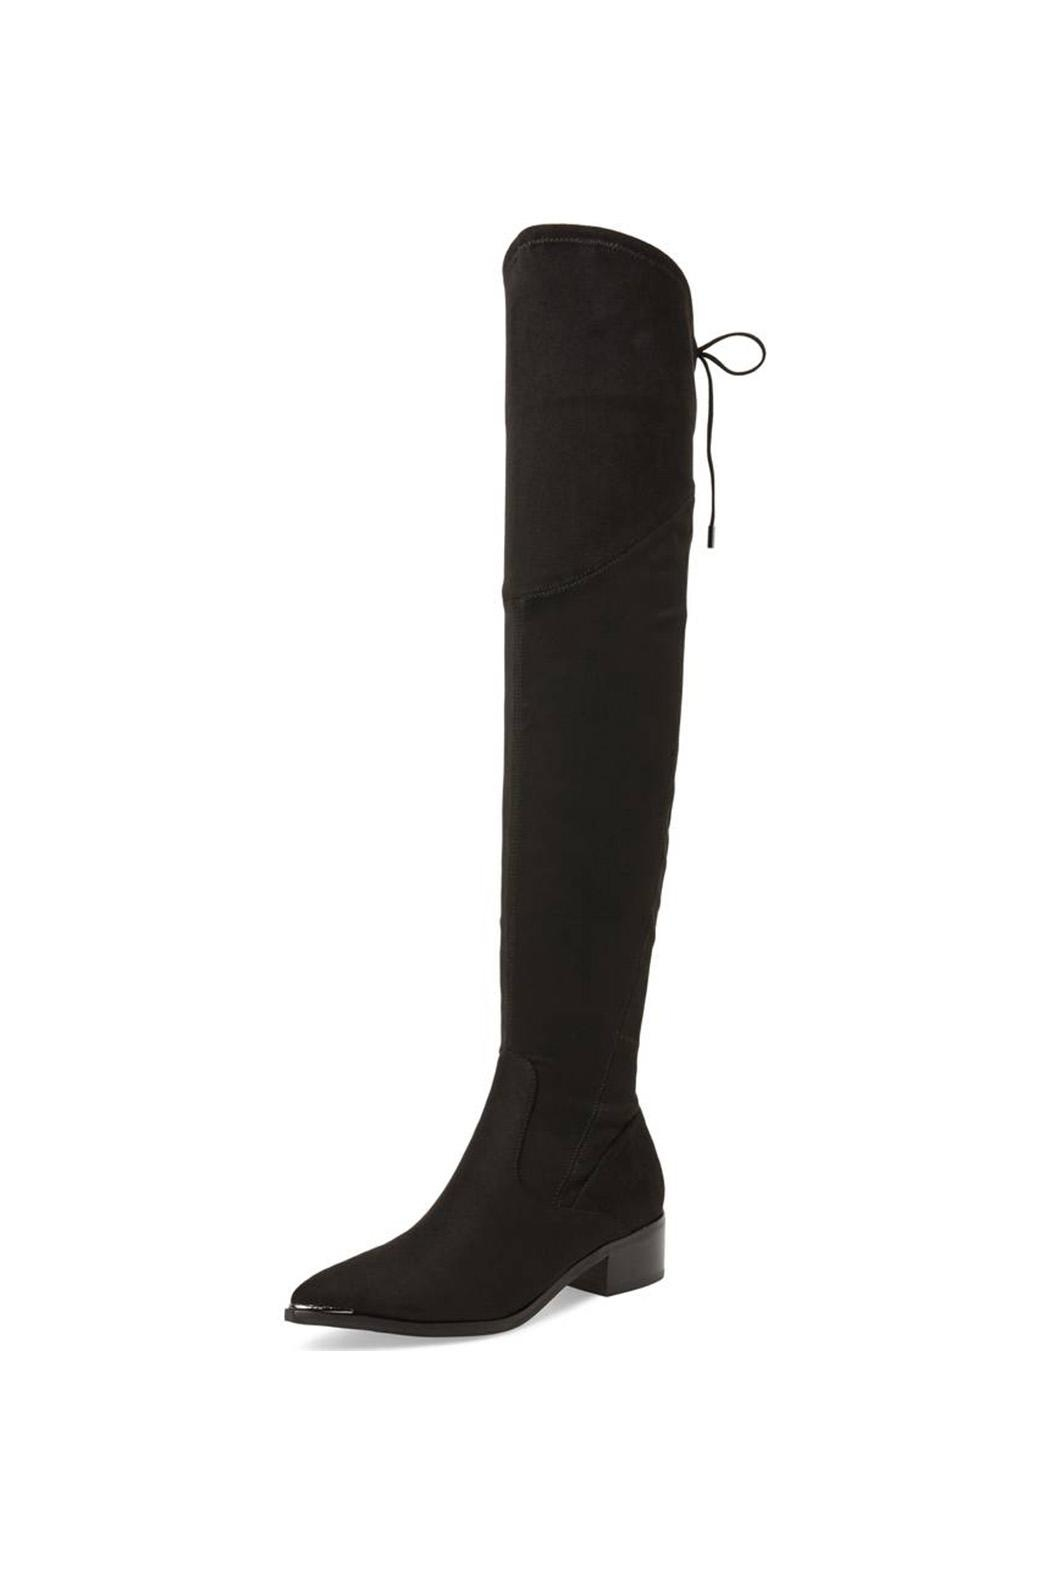 Marc Fisher LTD Yuna Black Boot - Front Cropped Image